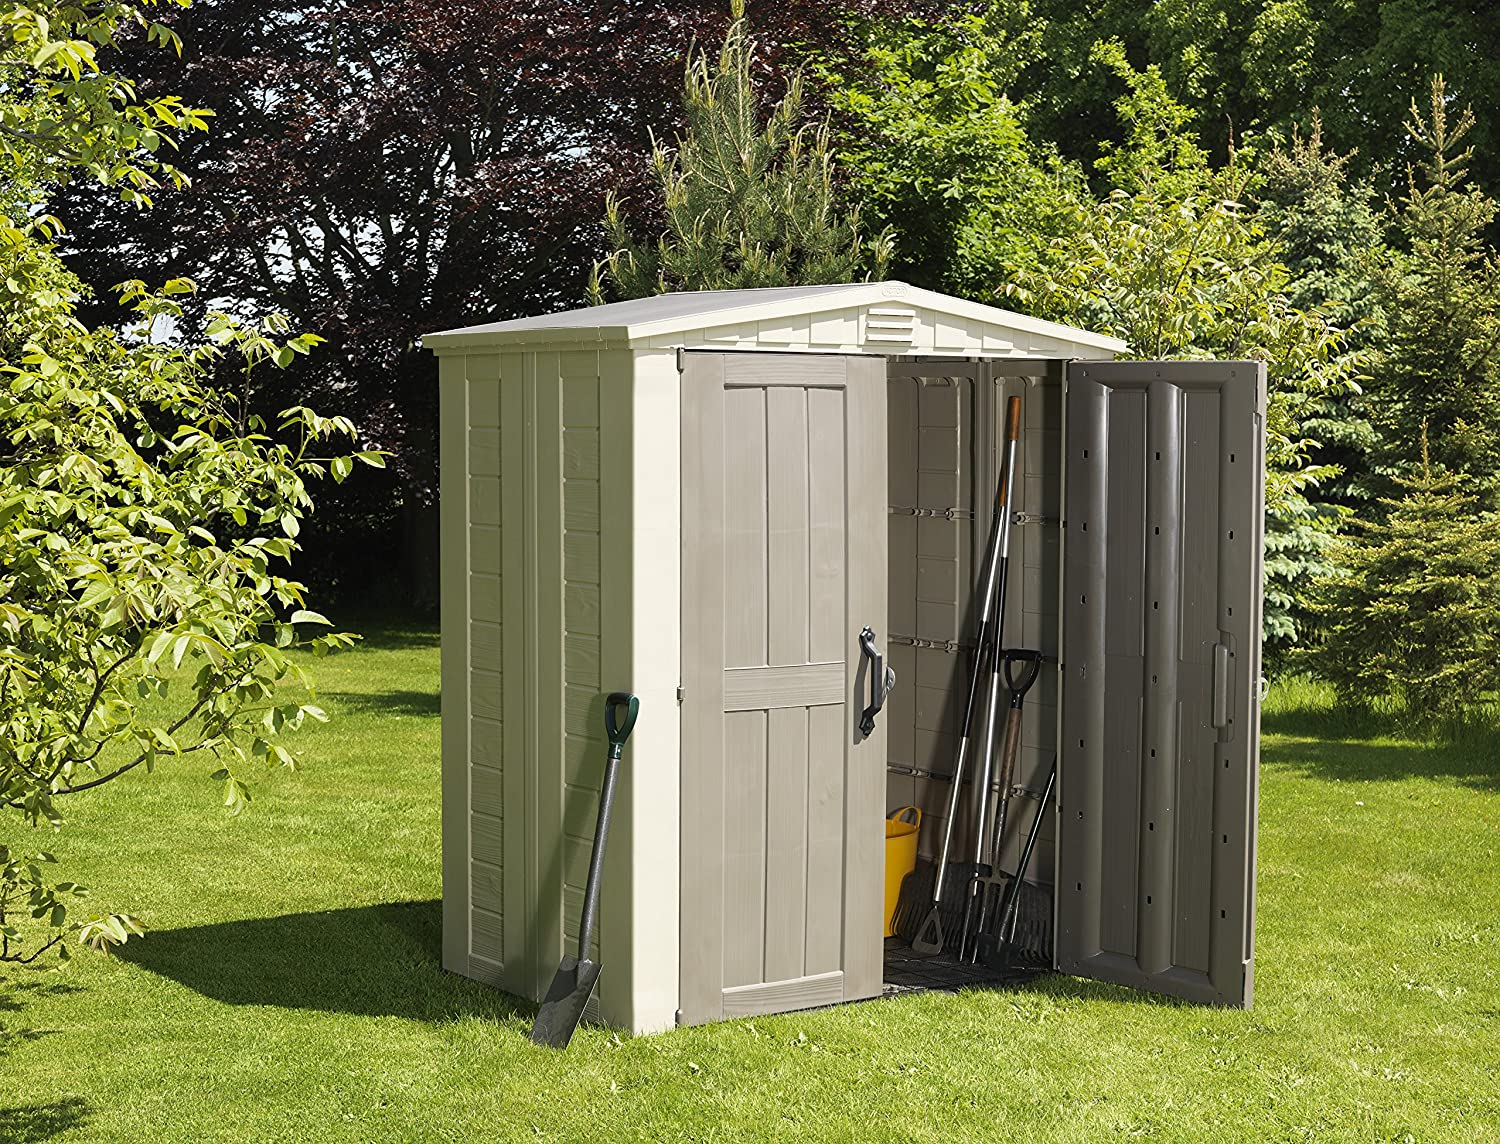 keter factor plastic outdoor garden storage shed 6 x 3 feet beige amazoncouk kitchen home